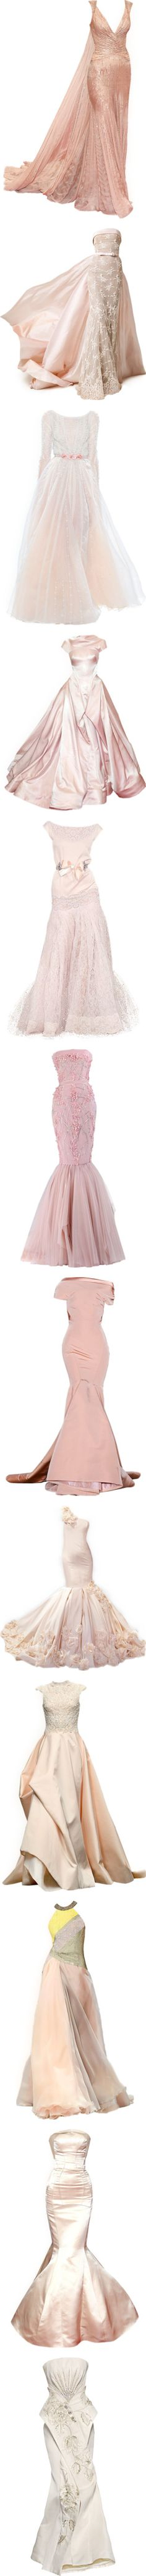 Pink Princess by kari-c on Polyvore featuring women's fashion, dresses, gowns, long dresses, vestidos, red gown, red carpet long dresses, red carpet evening gowns, red ball gown and long red evening dress